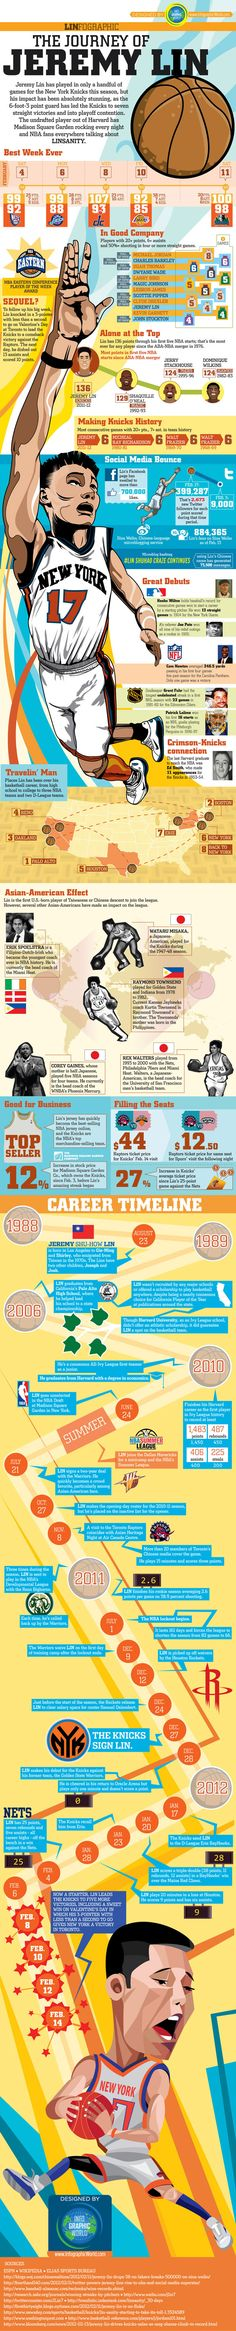 Linsanity fever: Linfographic.